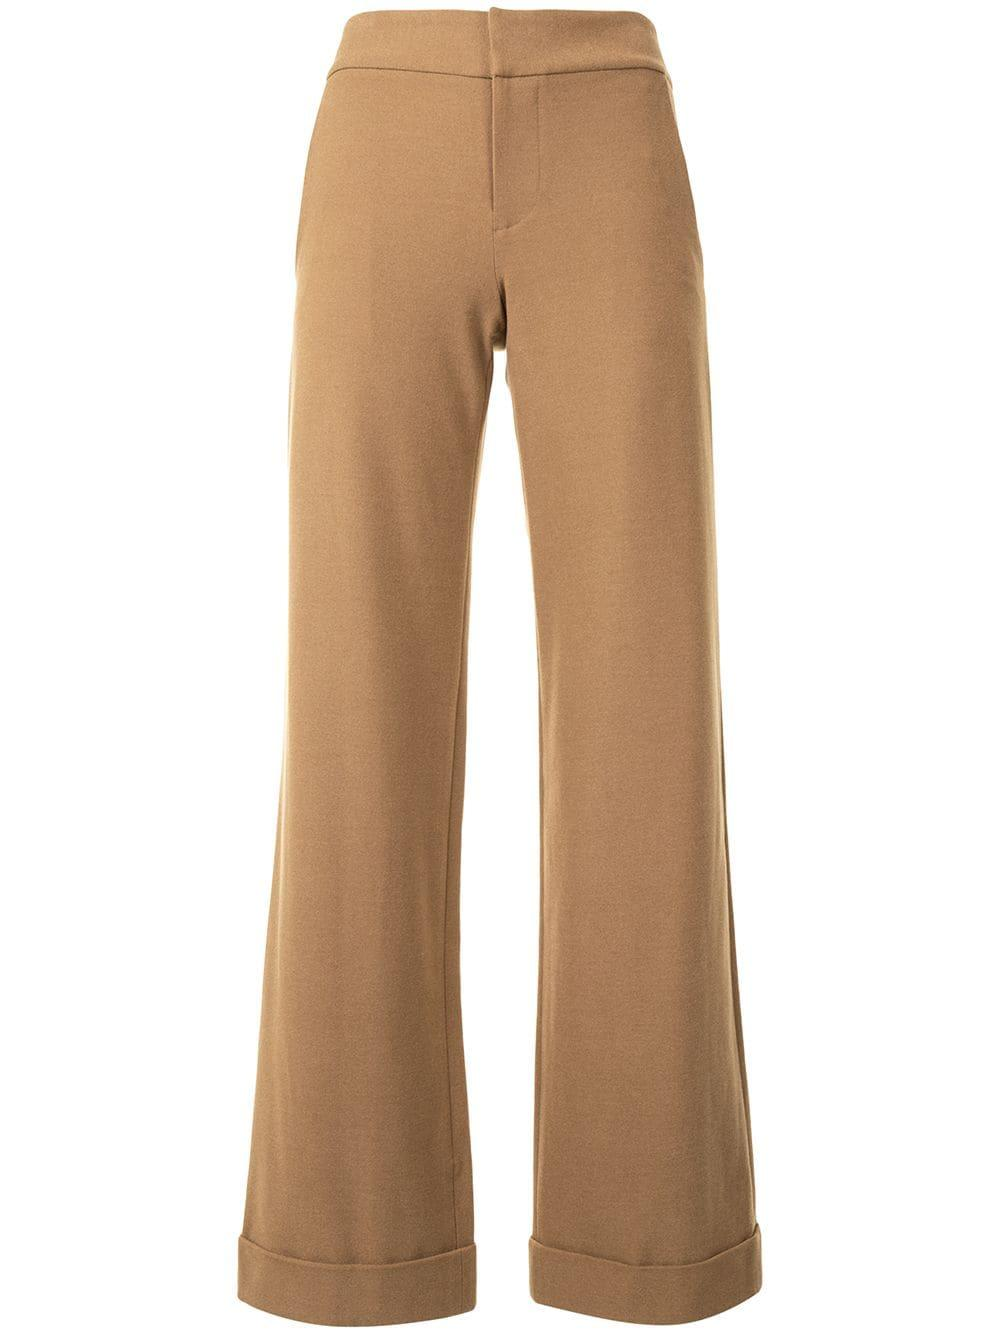 Dylan Low Rise Cuffed Pant